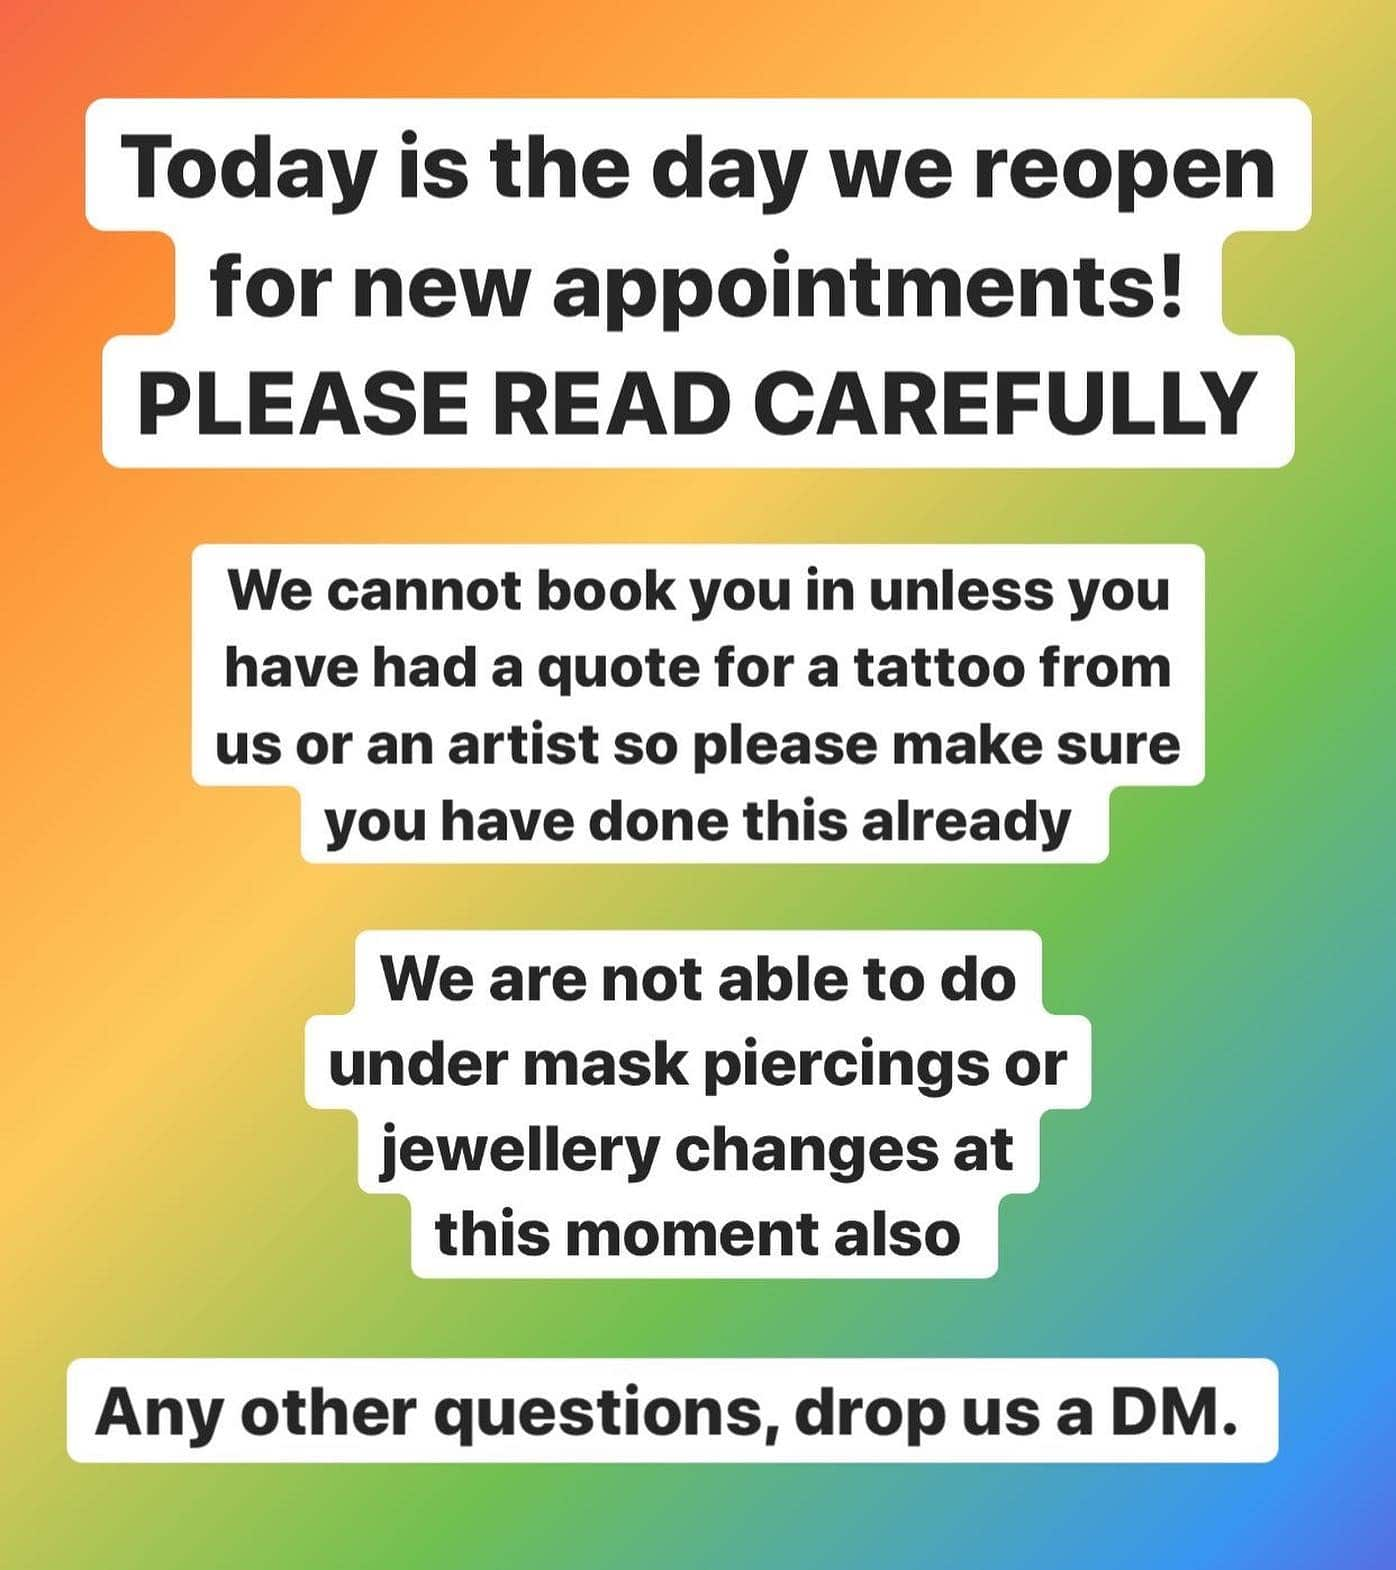 Please read carefully! Expect our phone and reception staff to be very busy today so please be patient! ————— ————— uktattooartists uktattoo inked inkedmag skinart skinartmag traditionaltattoo tradworkers colourtattoos scotland edinburghtattoo edinburghlife scotlandtattoo uktta oldschooltattoo fineline cleanwork inkdup inkd skindeep performer besttattoos blackclaw girlswithtattoos uktattoosupplies blackclaw solidink sailorjerry scottishtattoo thescottishtattoo studioxiii @barber_dts @easytattoo_uk @eternalink @dynamiccolor @lockdownneedle @stencilstuff